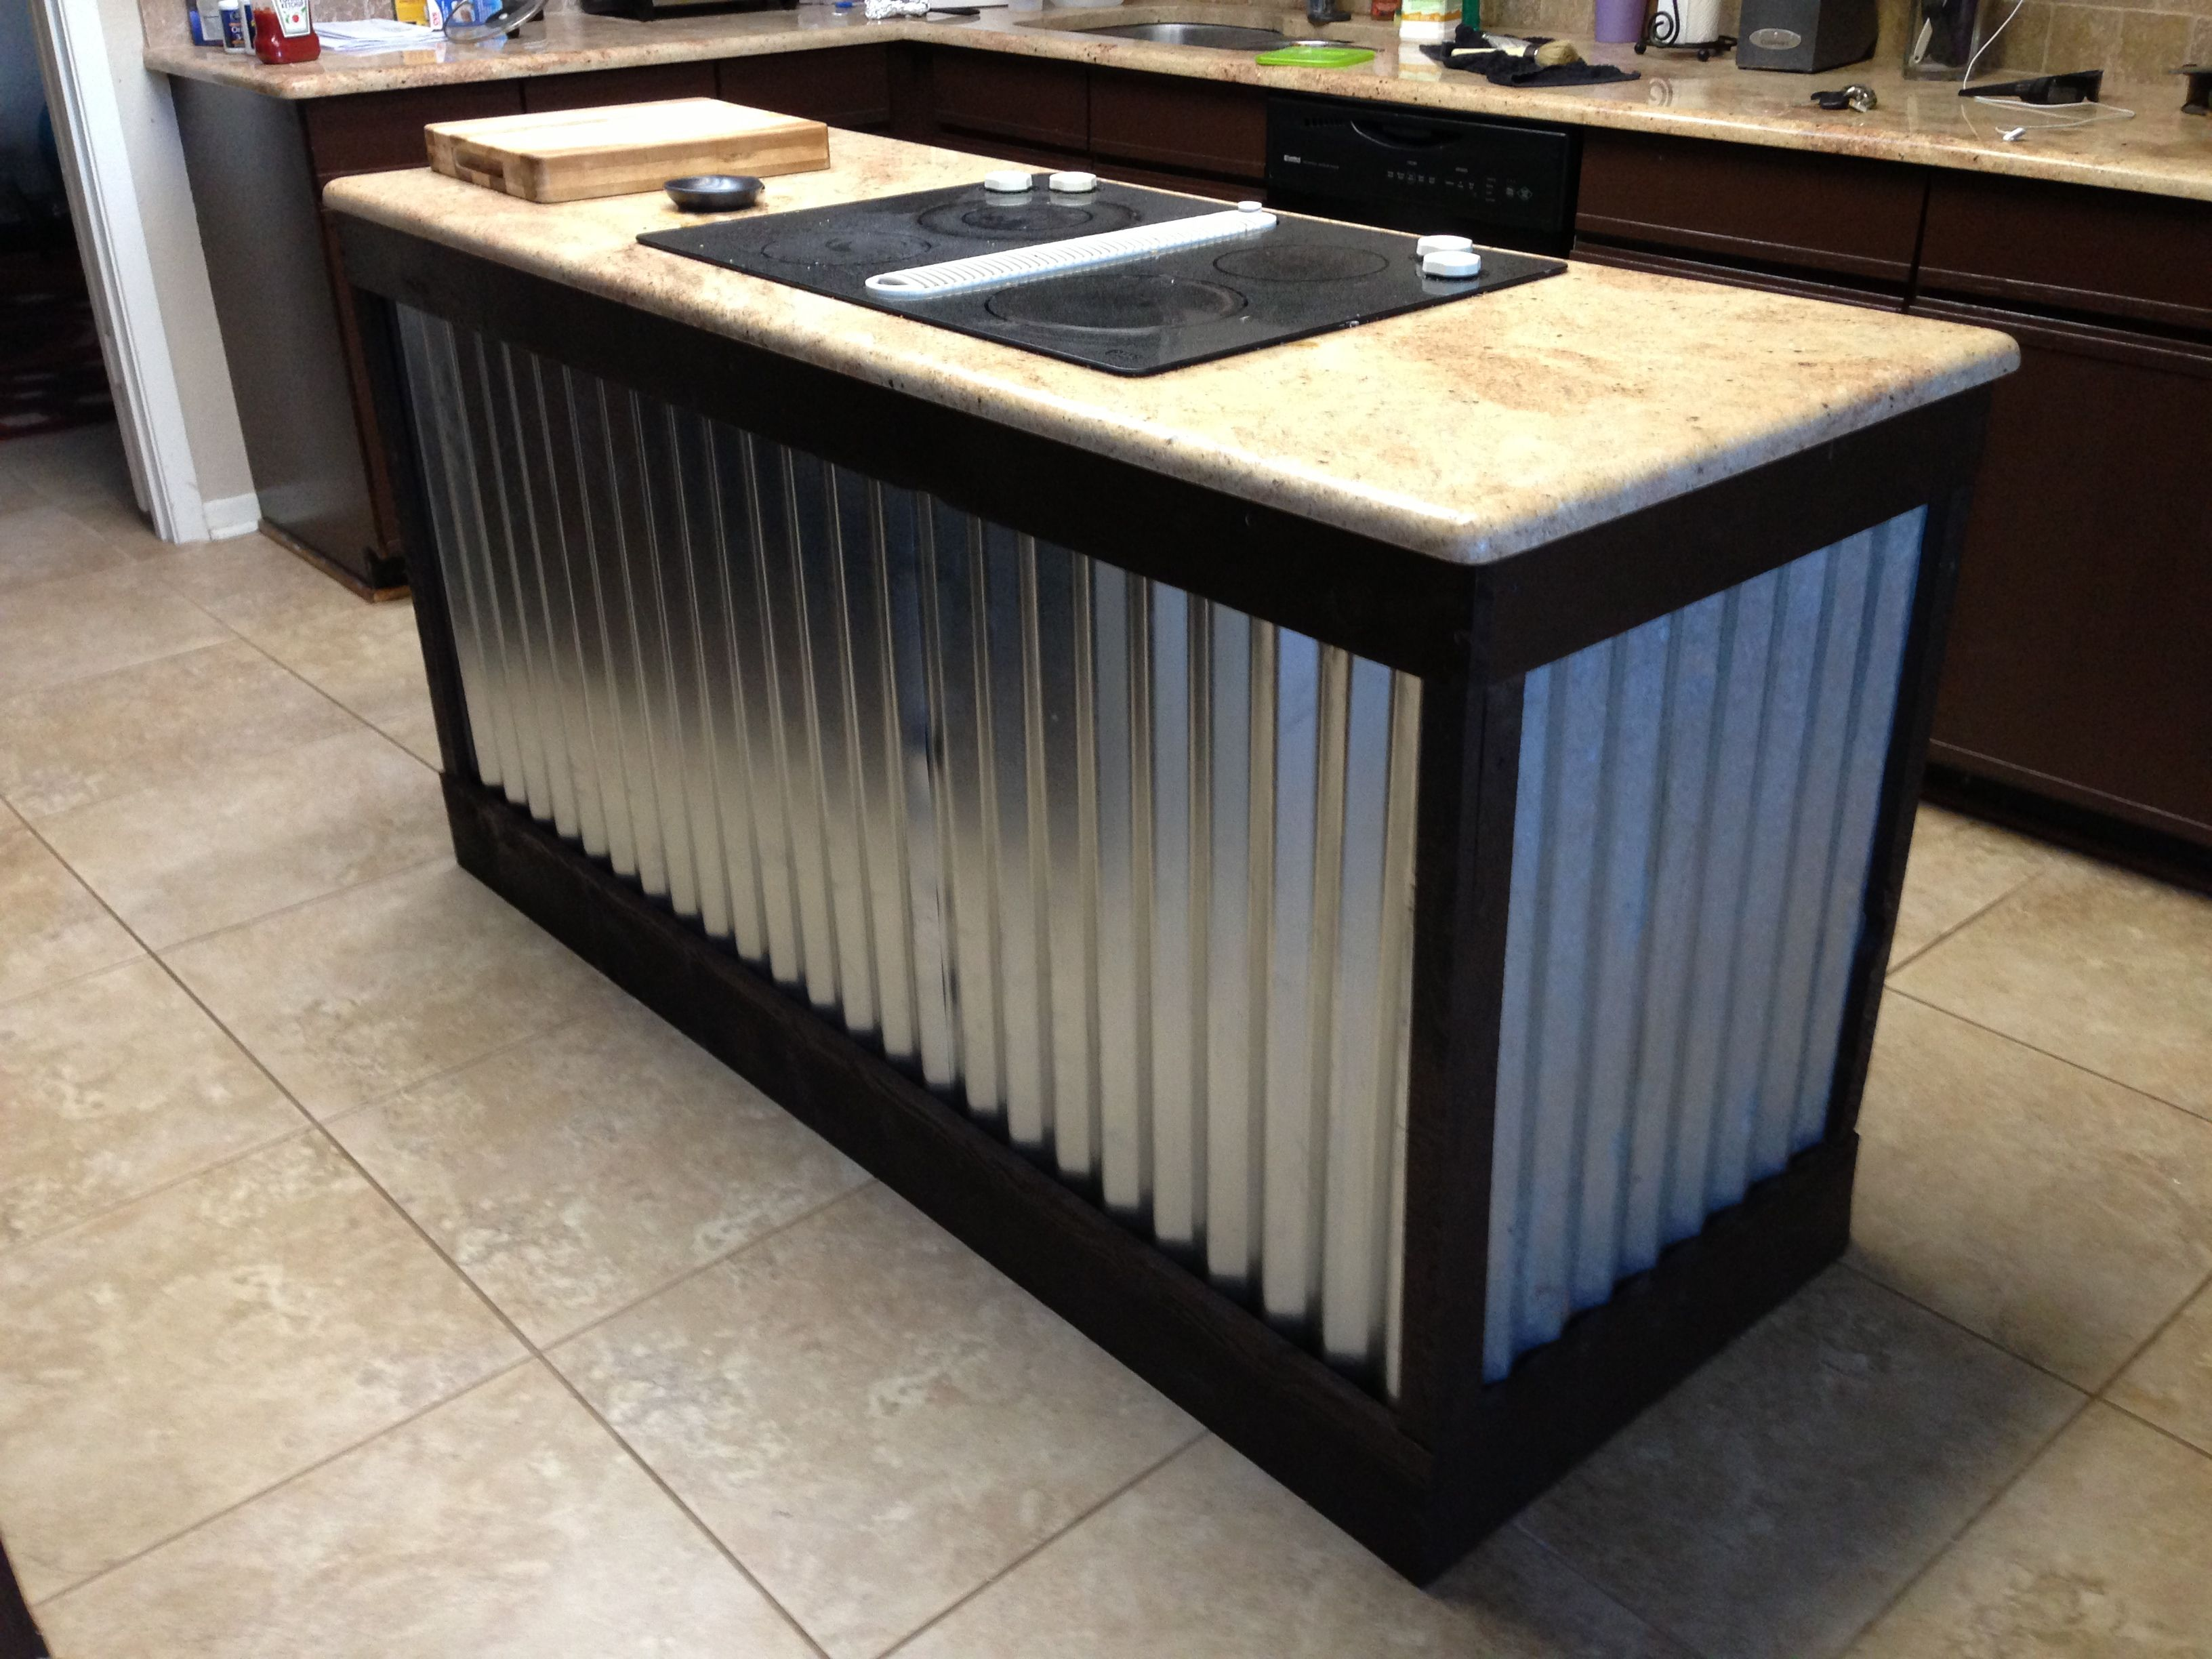 Corrugated Metal Kitchen Island Project Done! Galvanized Tin On Island. | Future Projects